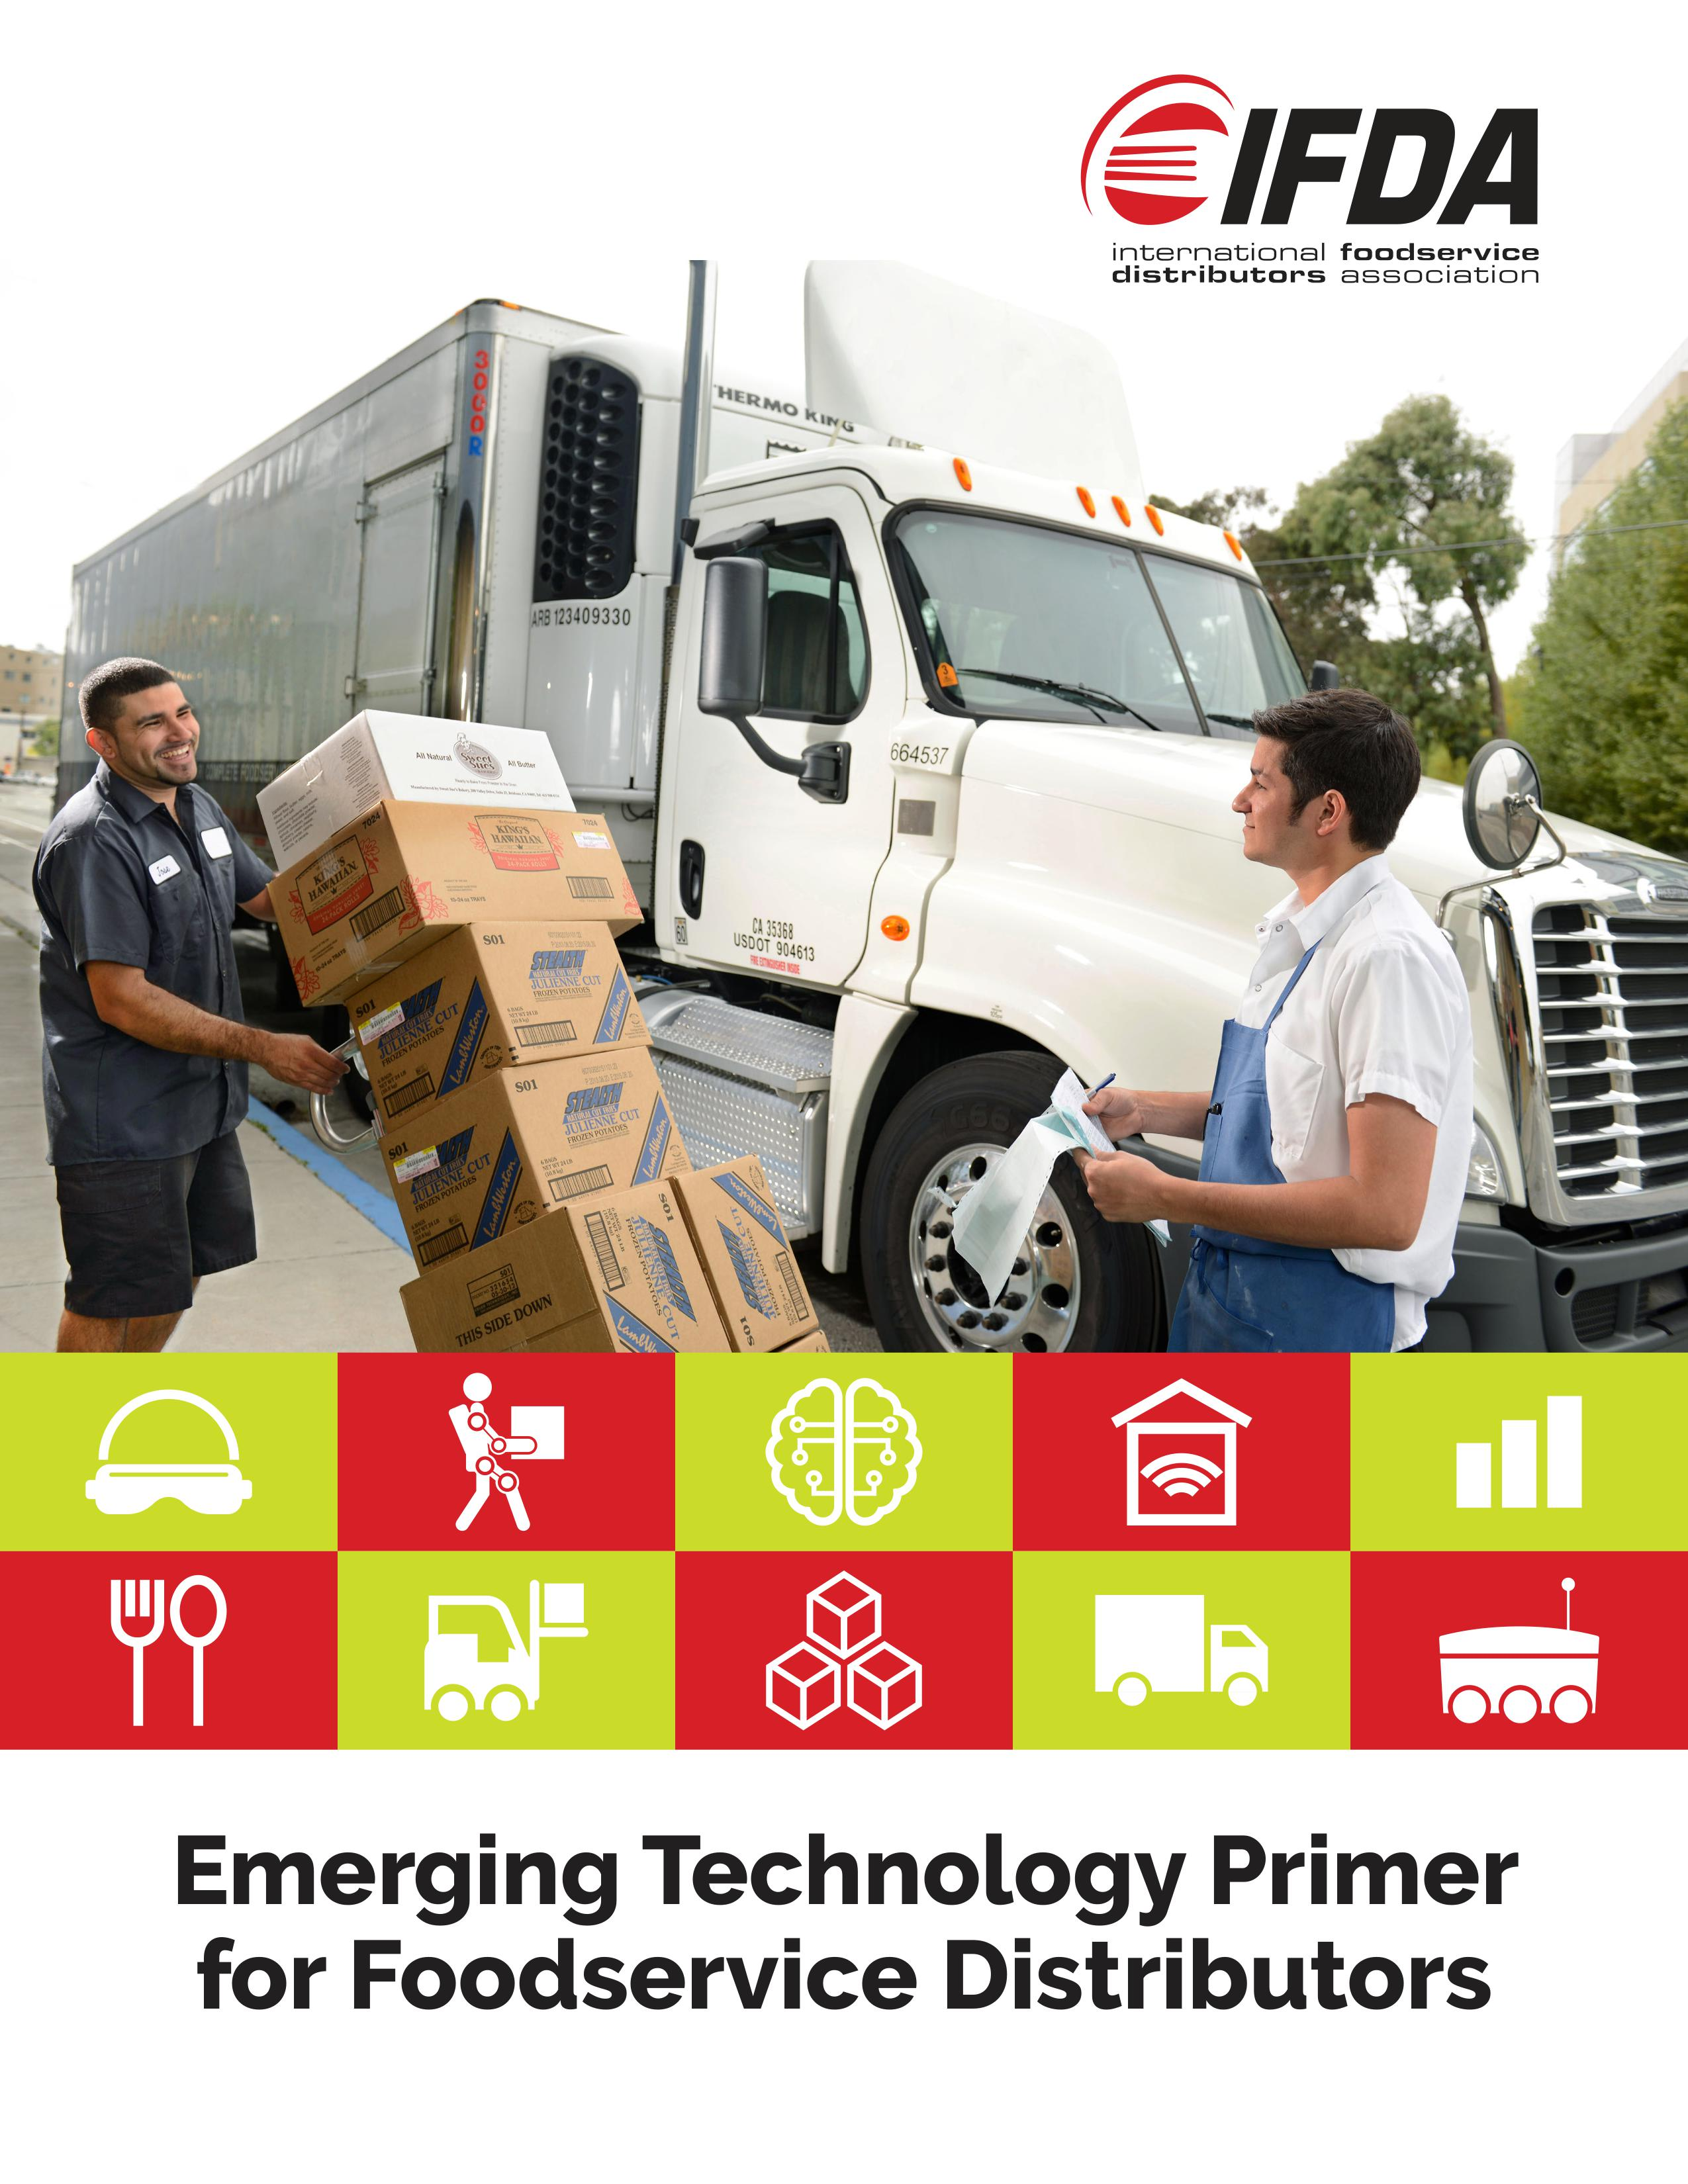 Thumbnail of Emerging Technology Primer for Foodservice